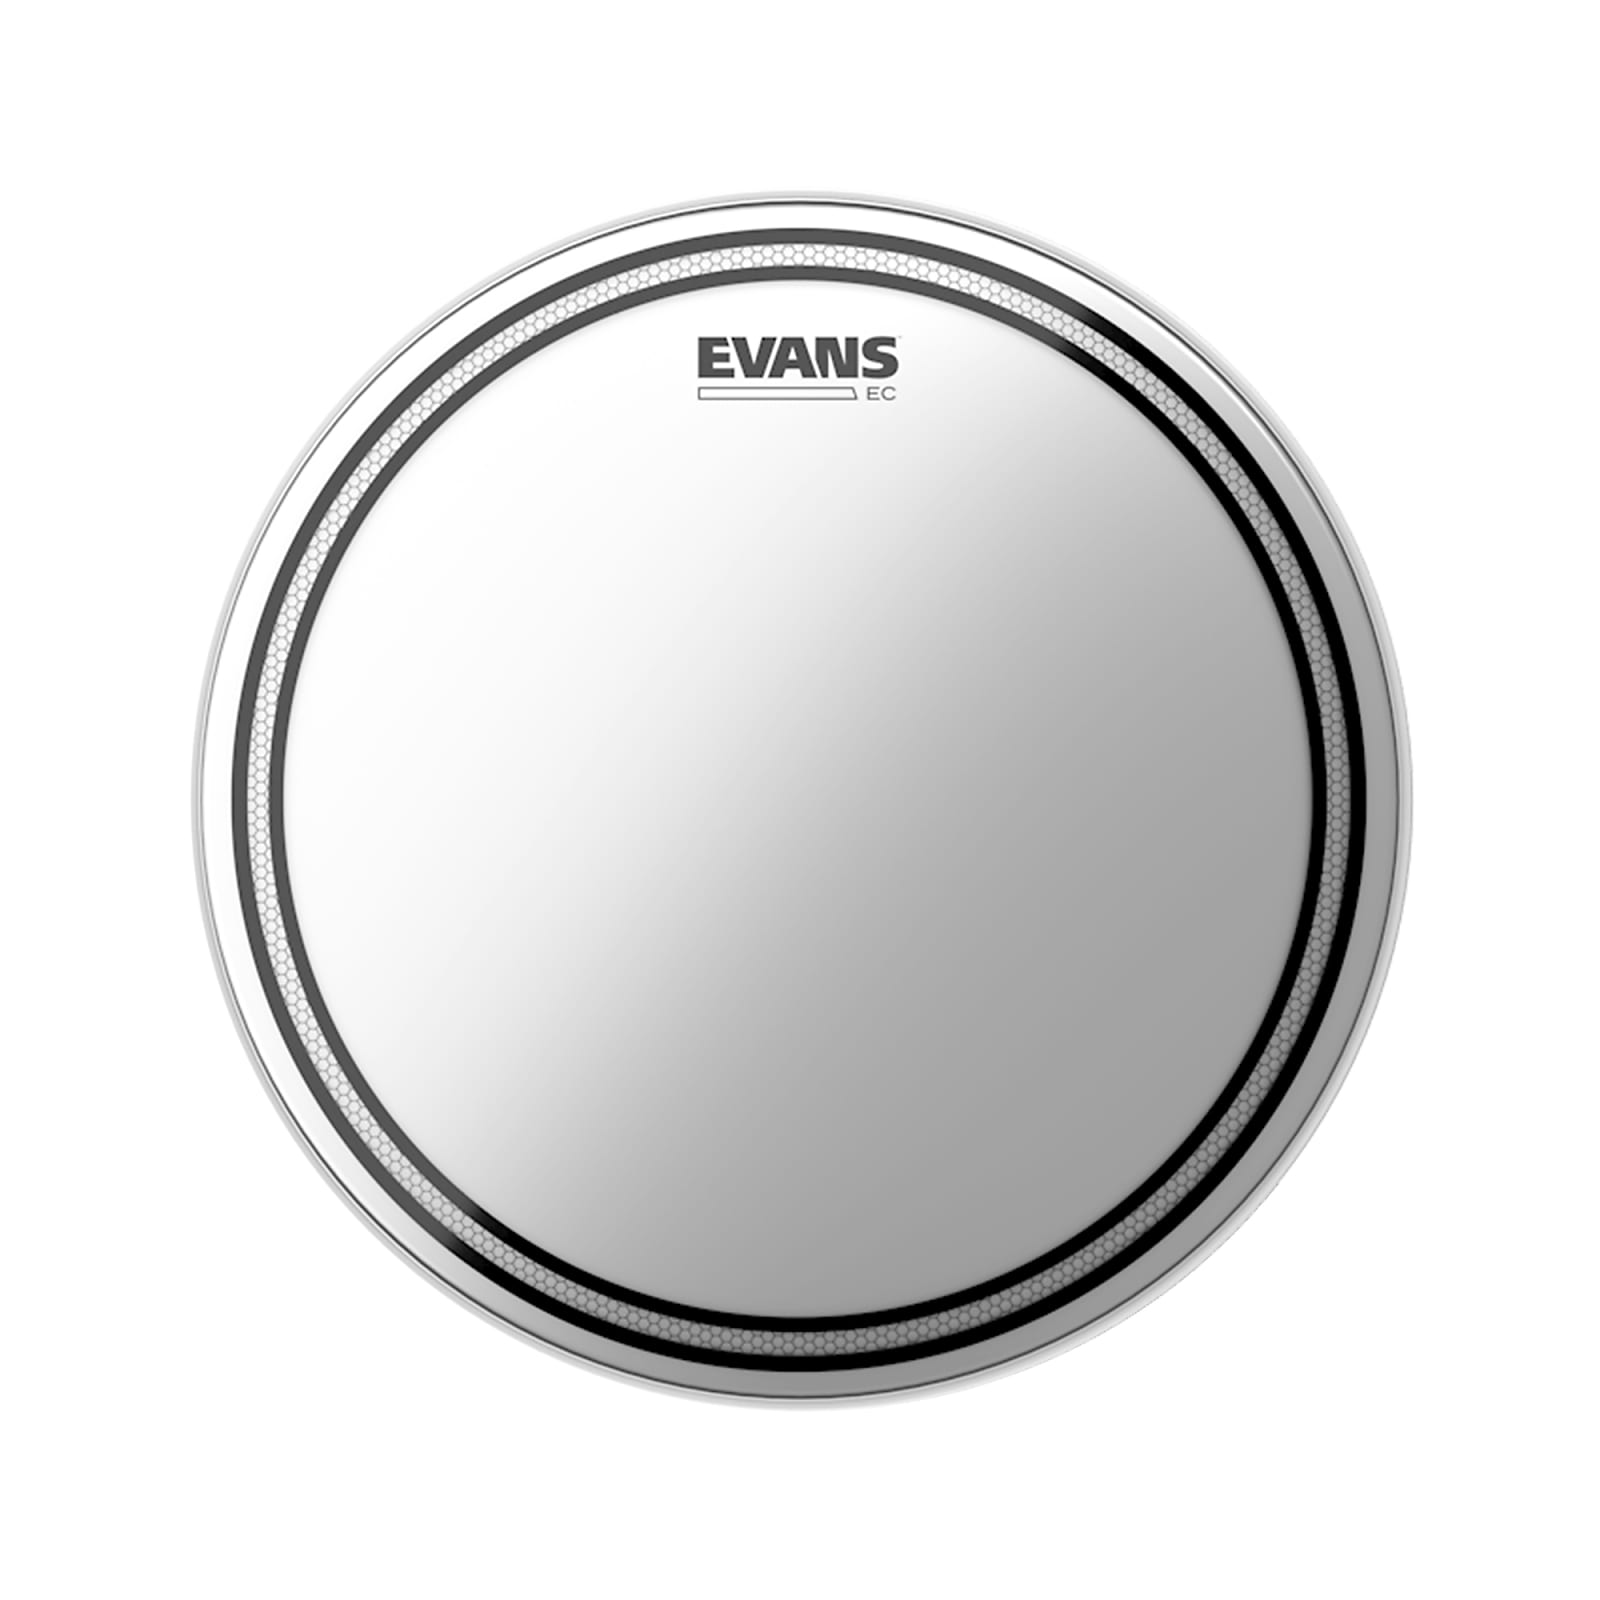 Evans Hydraulic Black Drum Head 8 Inch